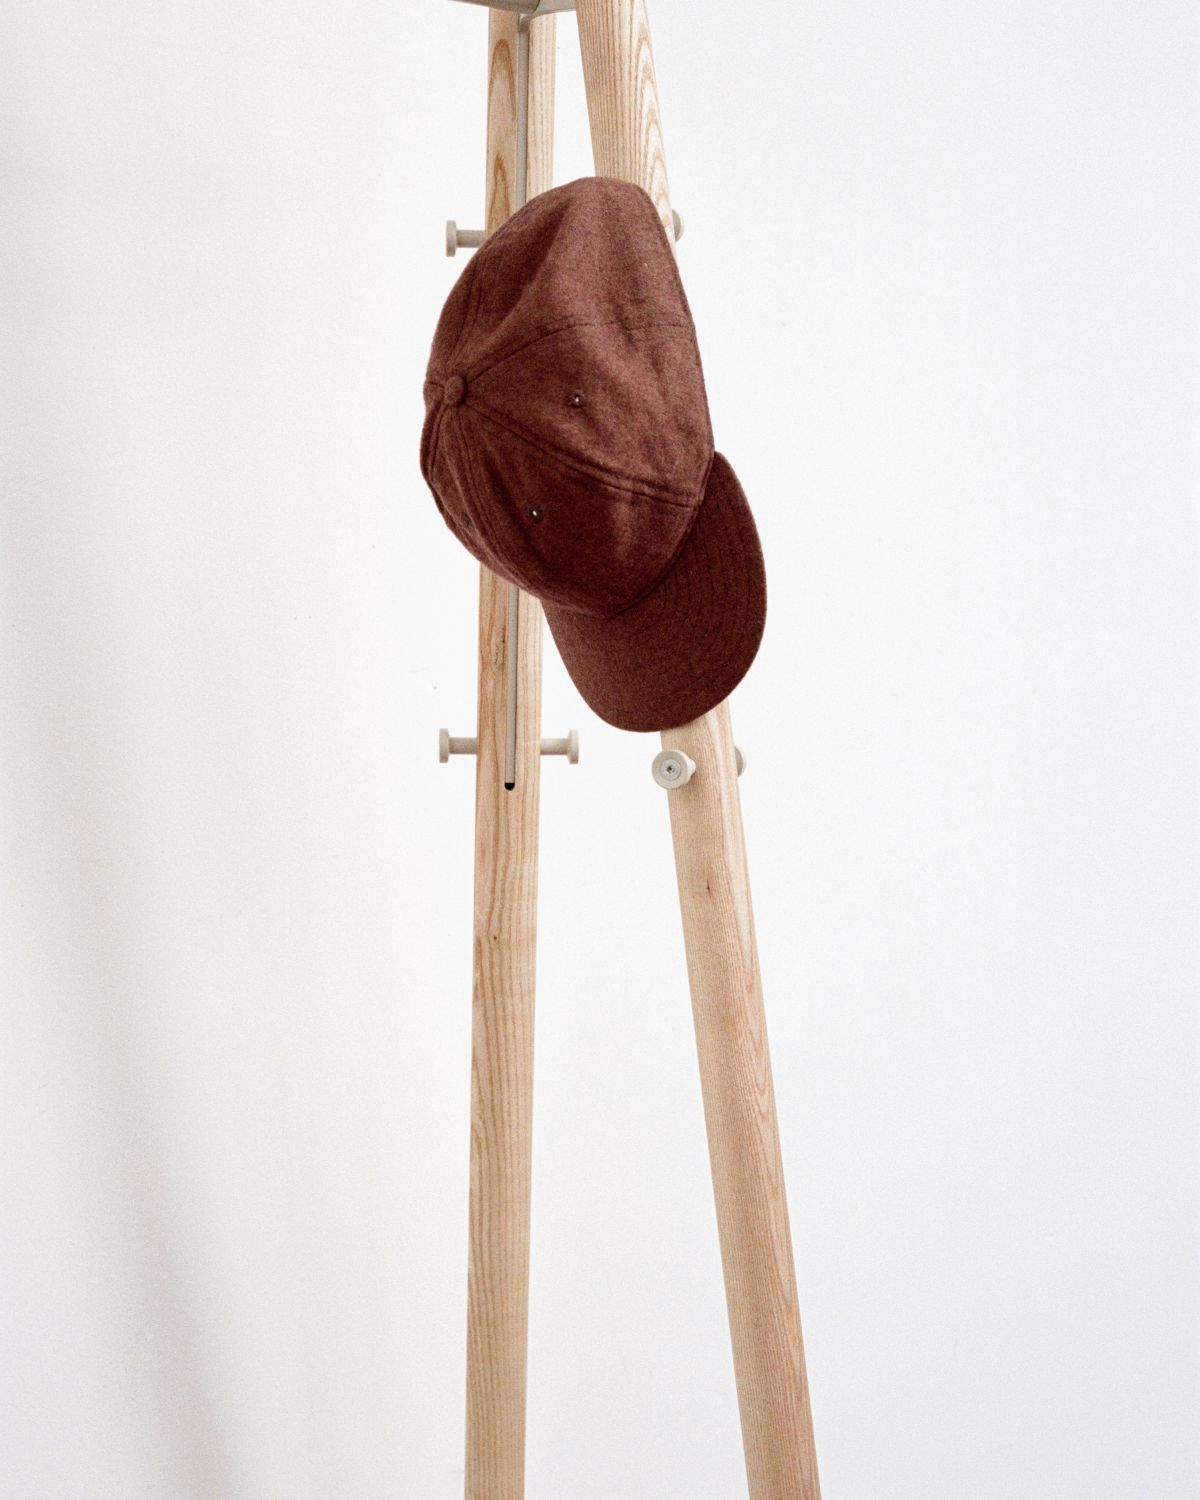 Kiila coat rack